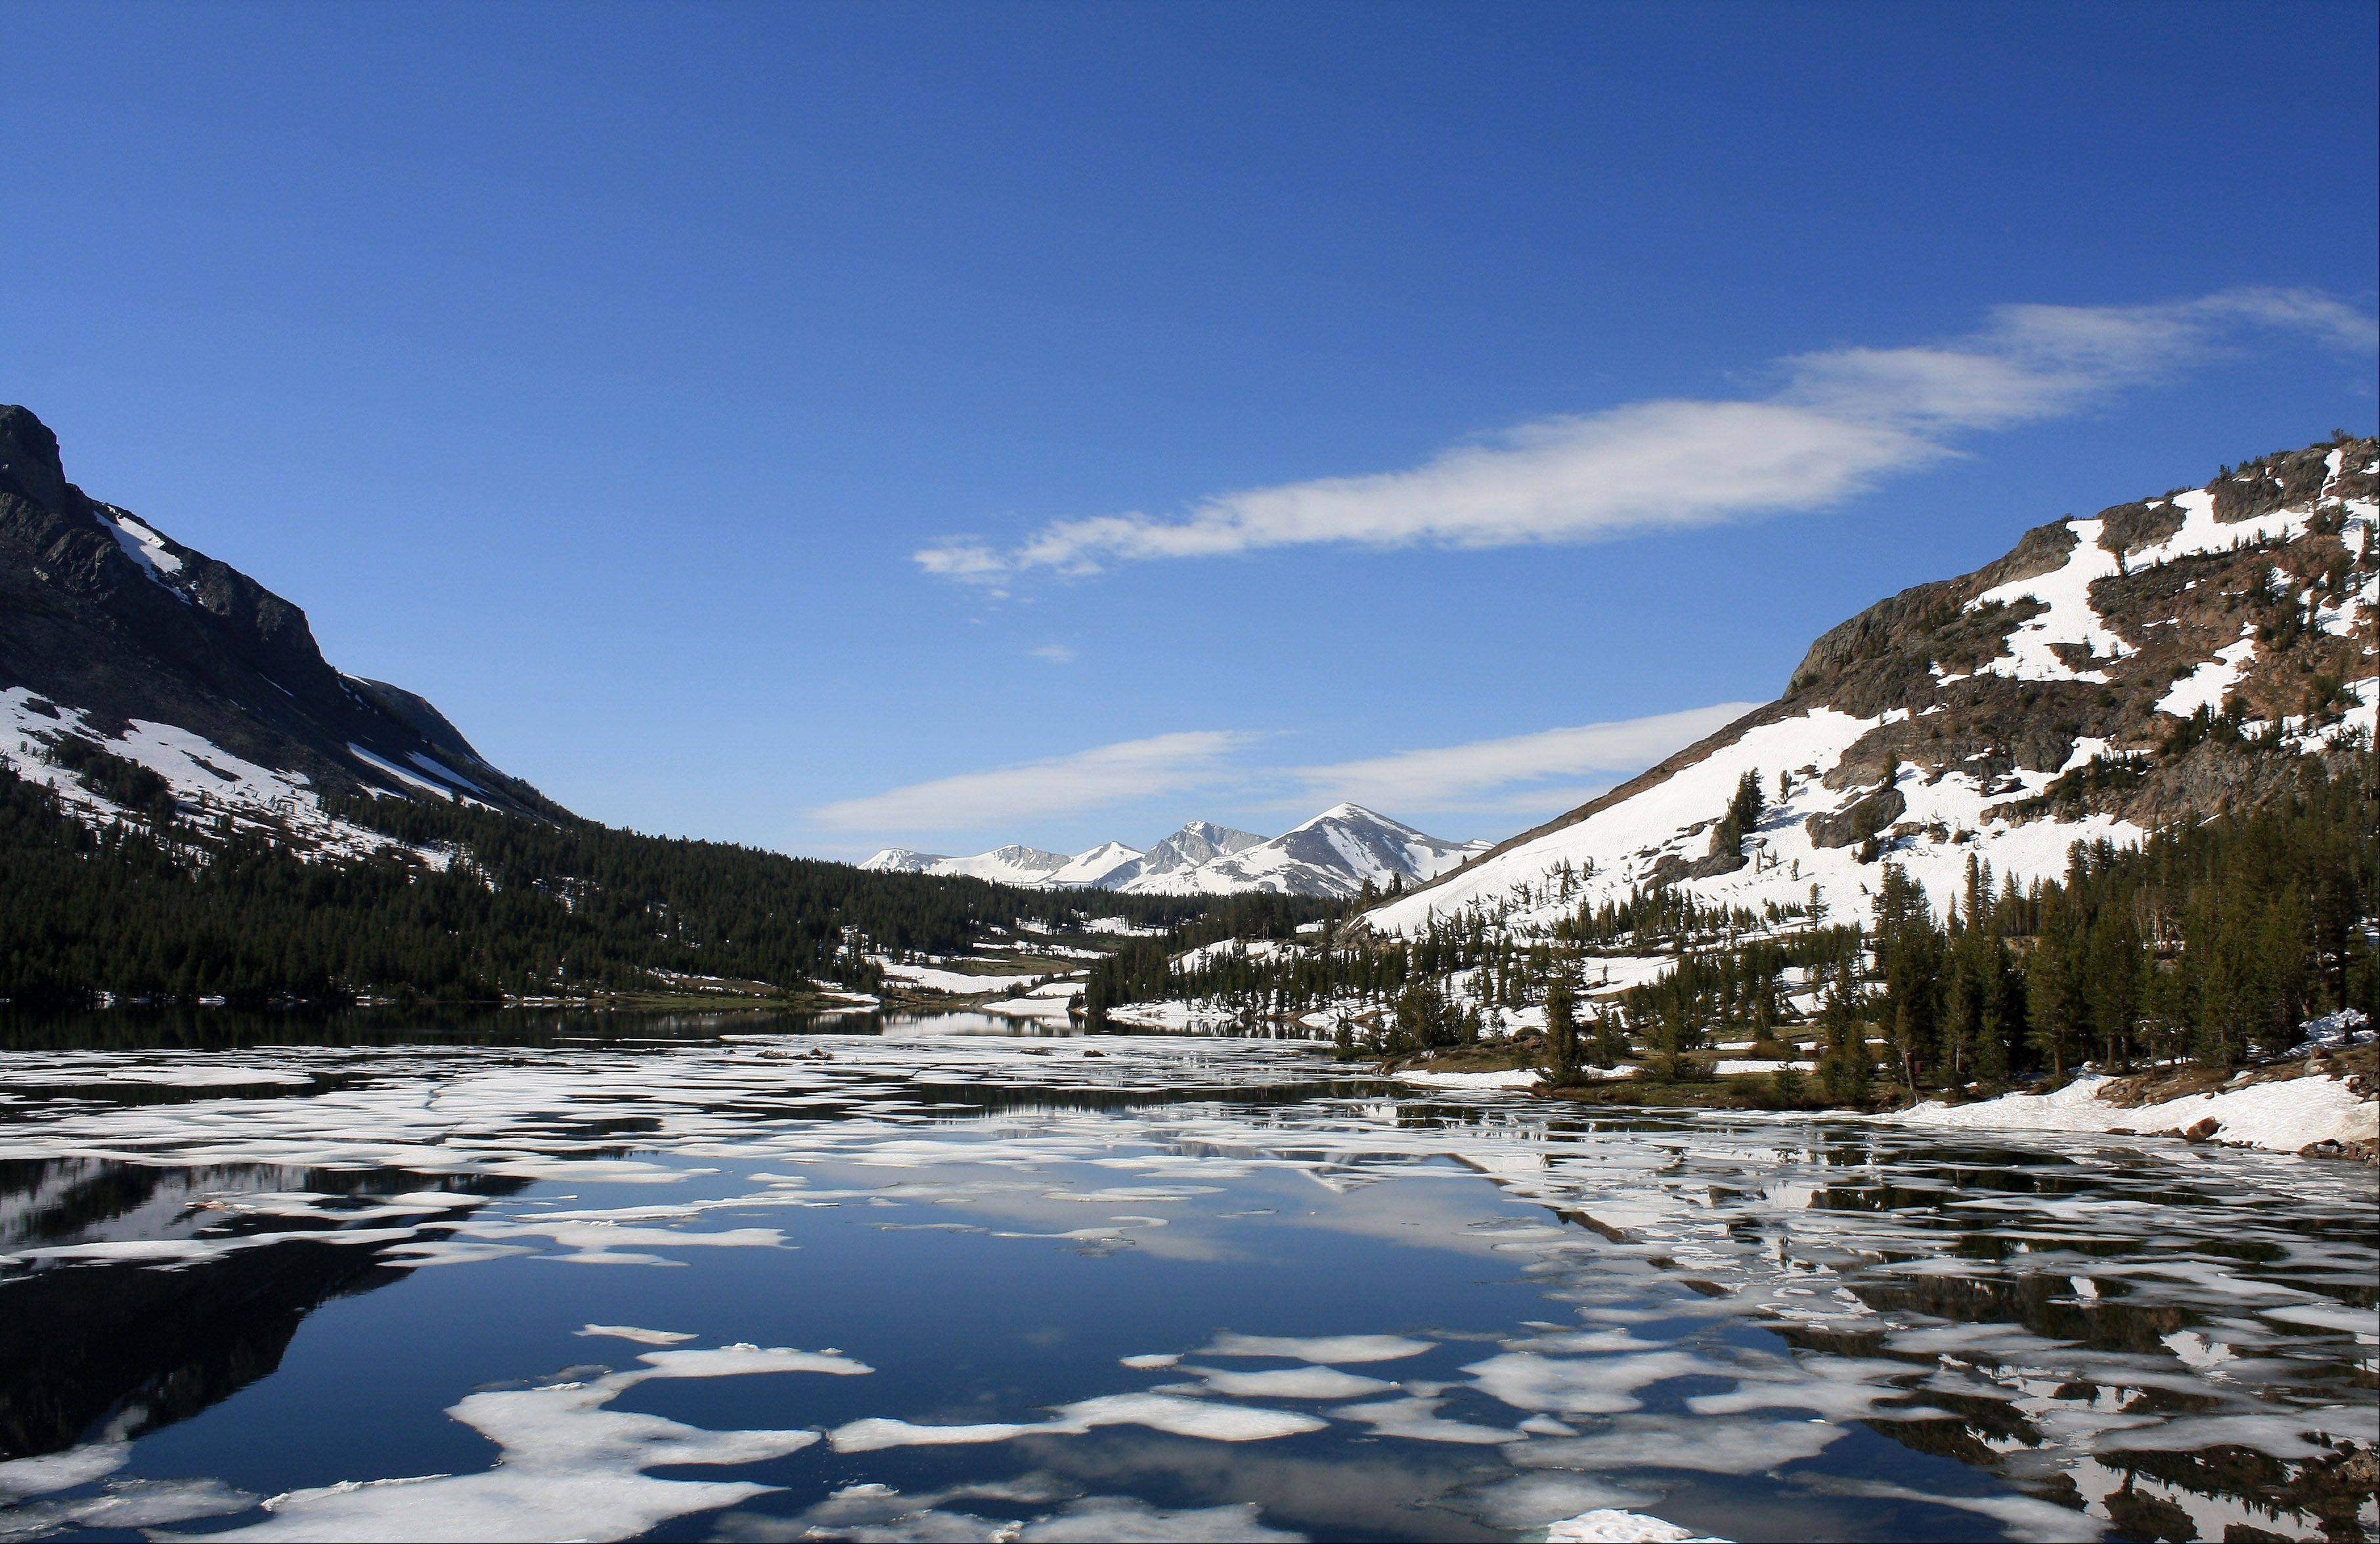 An icy lake in Yosemite, July 5, 2011.